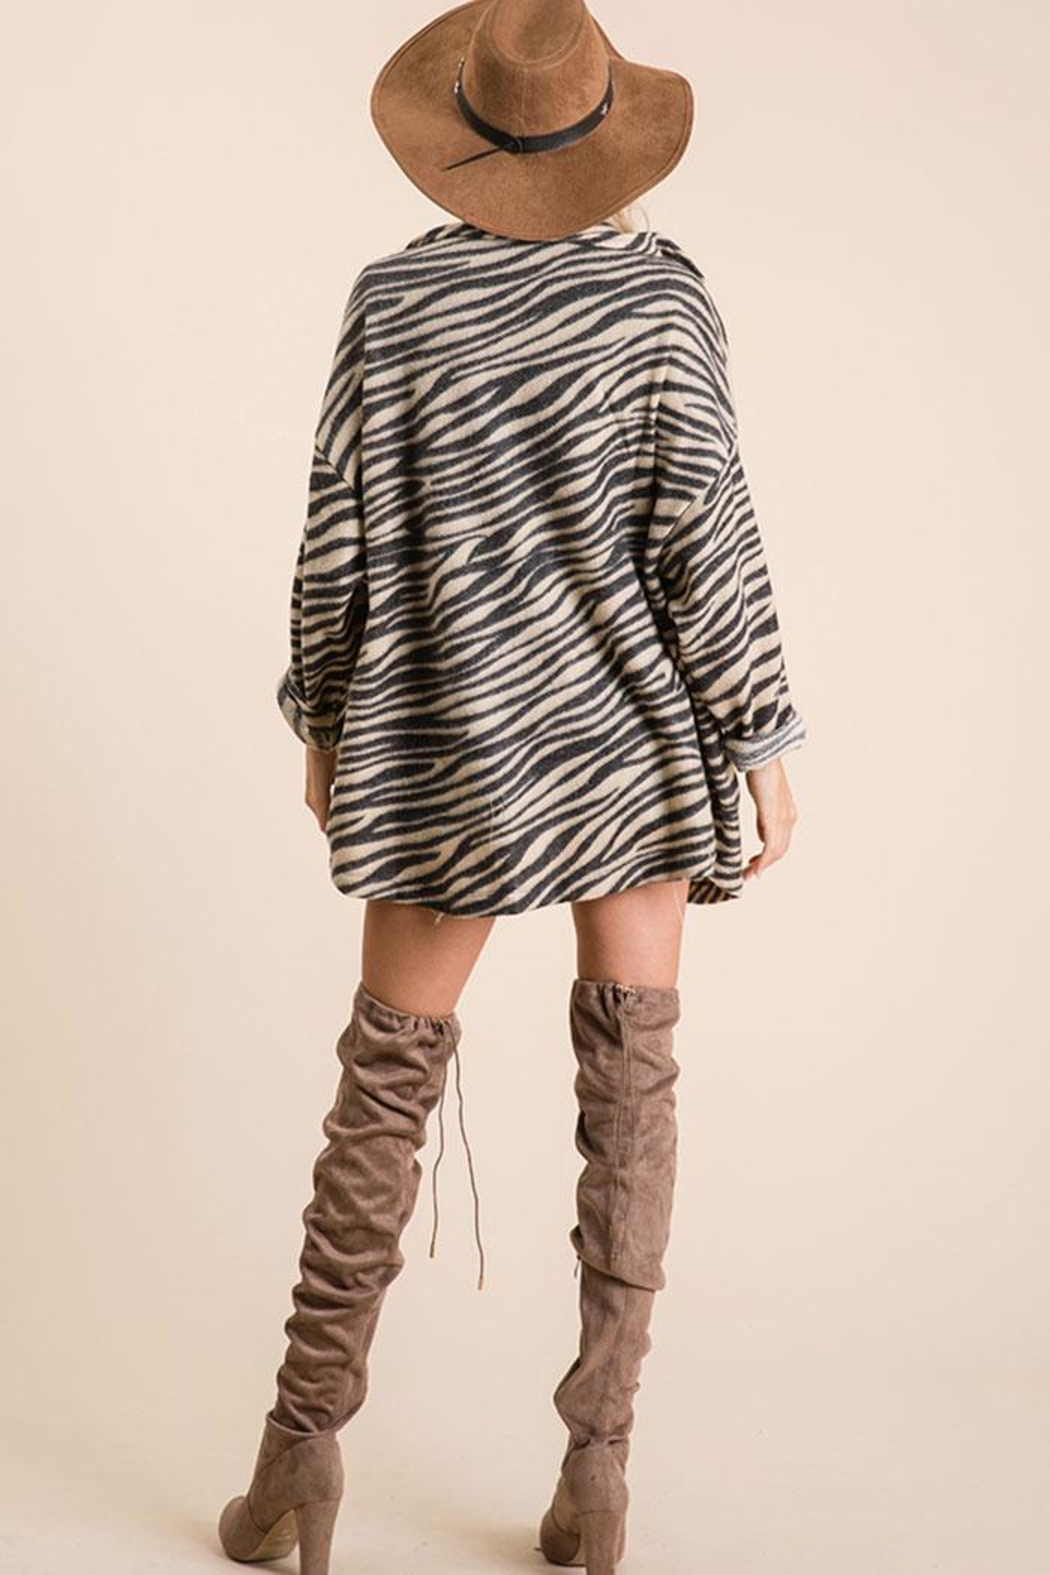 Ces Femme Zebra Print Button Down Shirt - Side Cropped Image